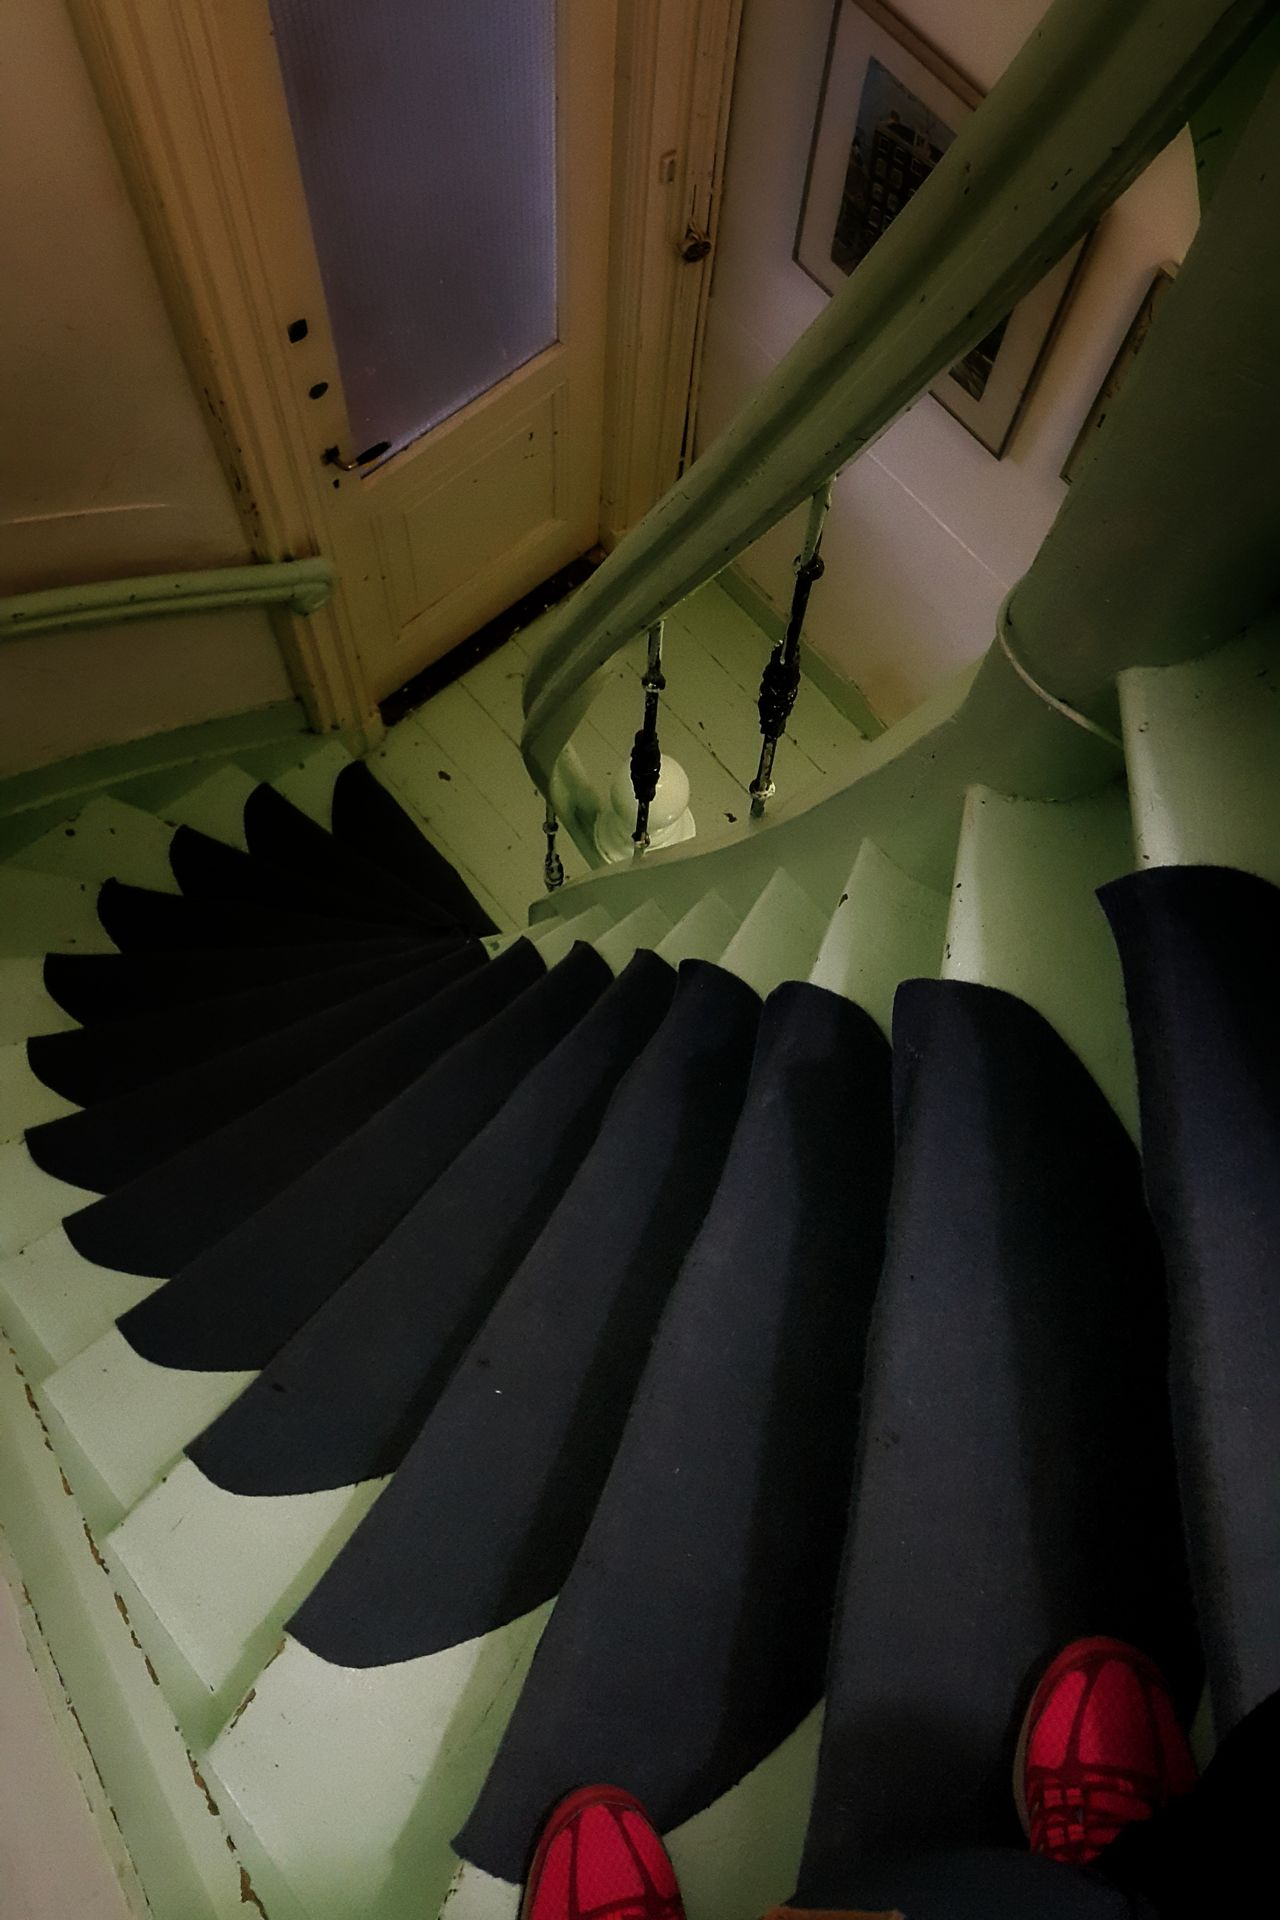 Climbing up these stairs was fine, going down was a different story 😨 Vertical Vertigo High Angle Spiralstairs Spiral Staircase Stairs Steps Dutch House Indoors  Red Shoes Dutch Architecture